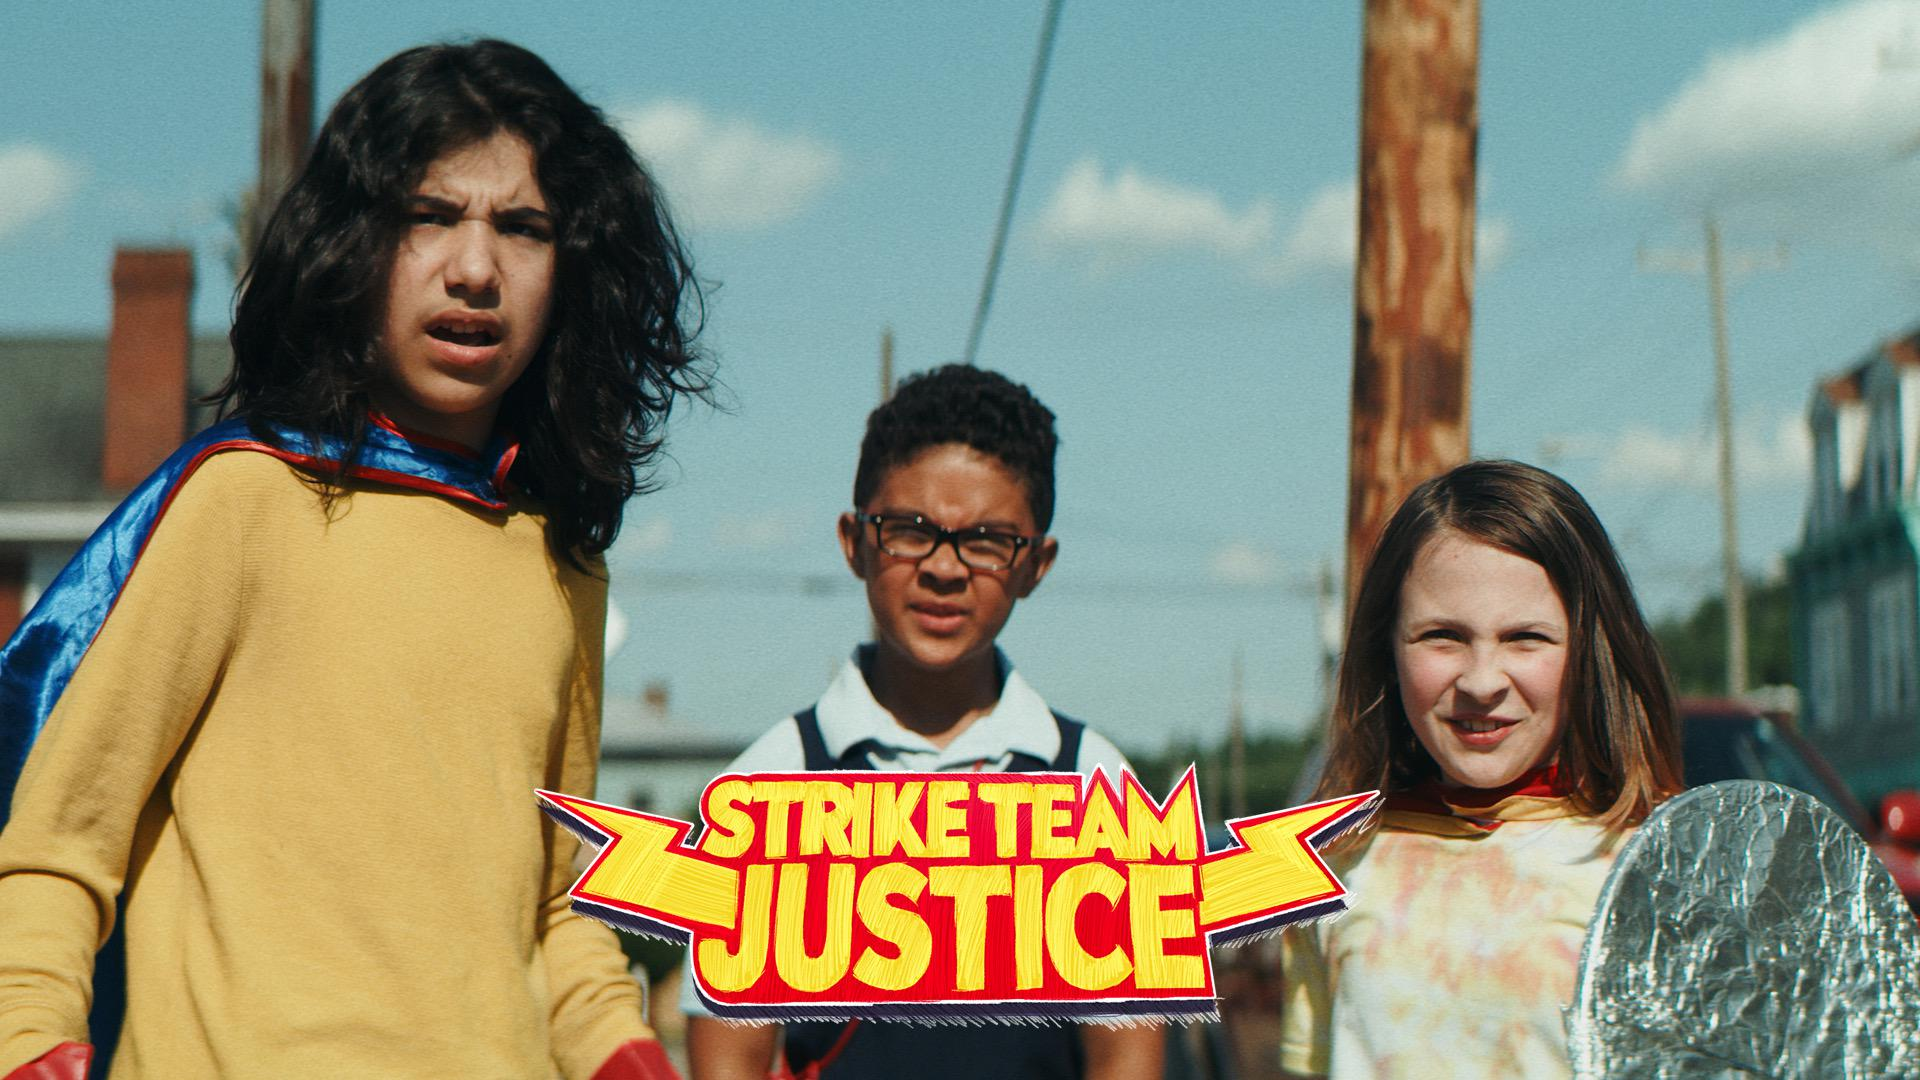 Strike Team Justice